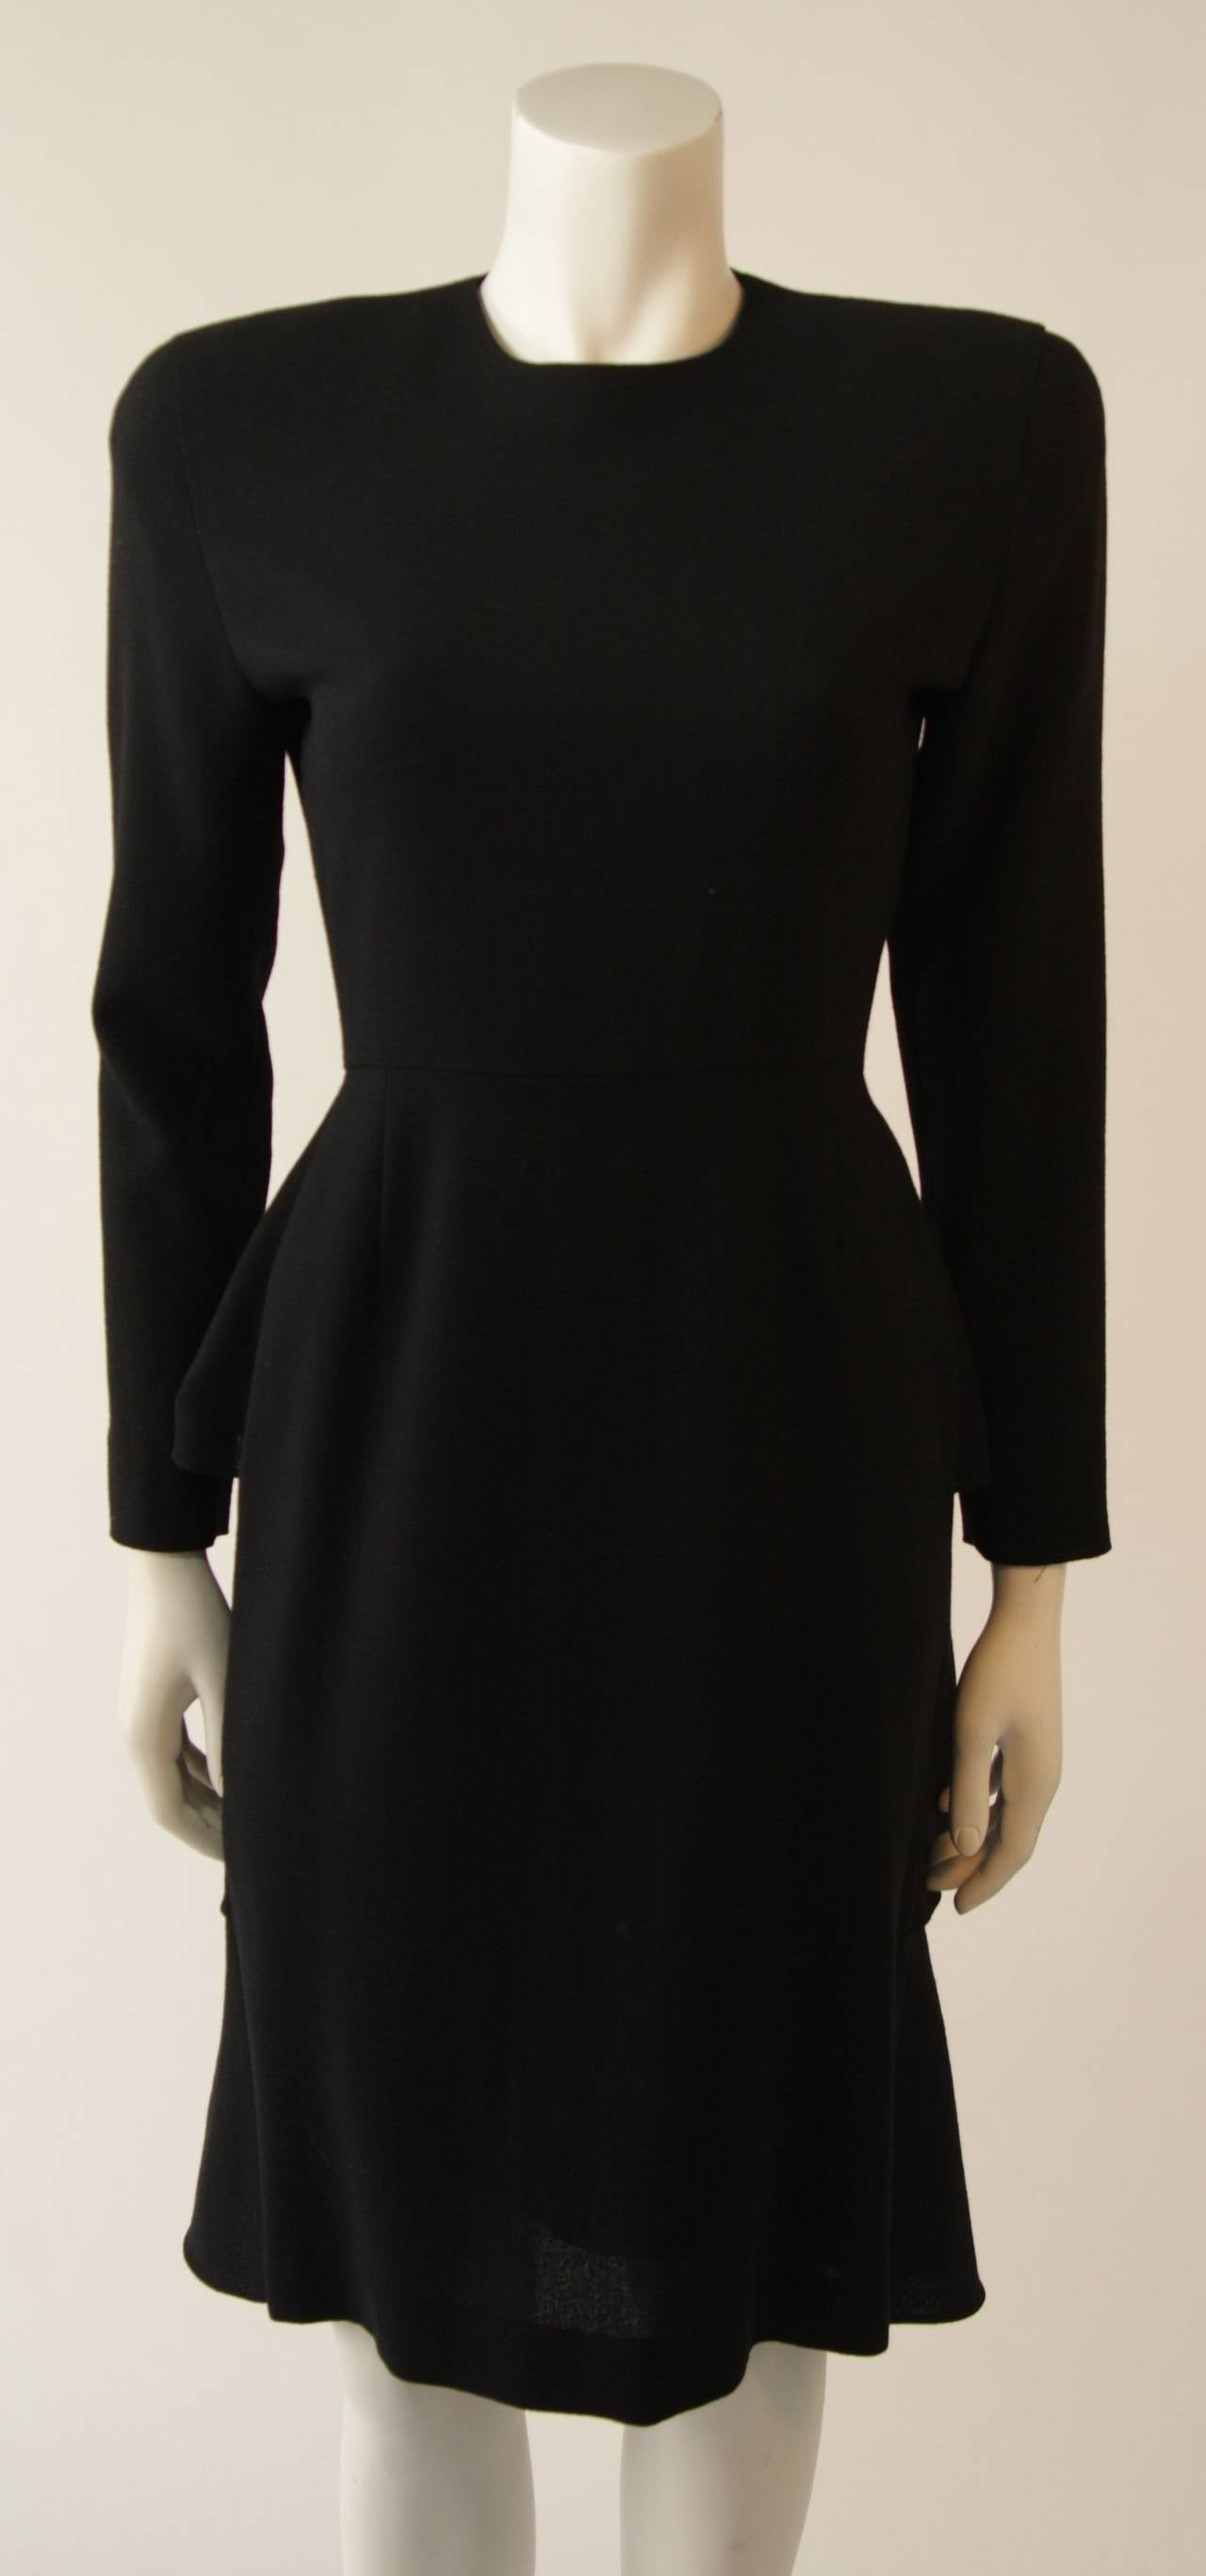 Anne Klein Black Wool Cocktail Dress with Ruffle Detail 4